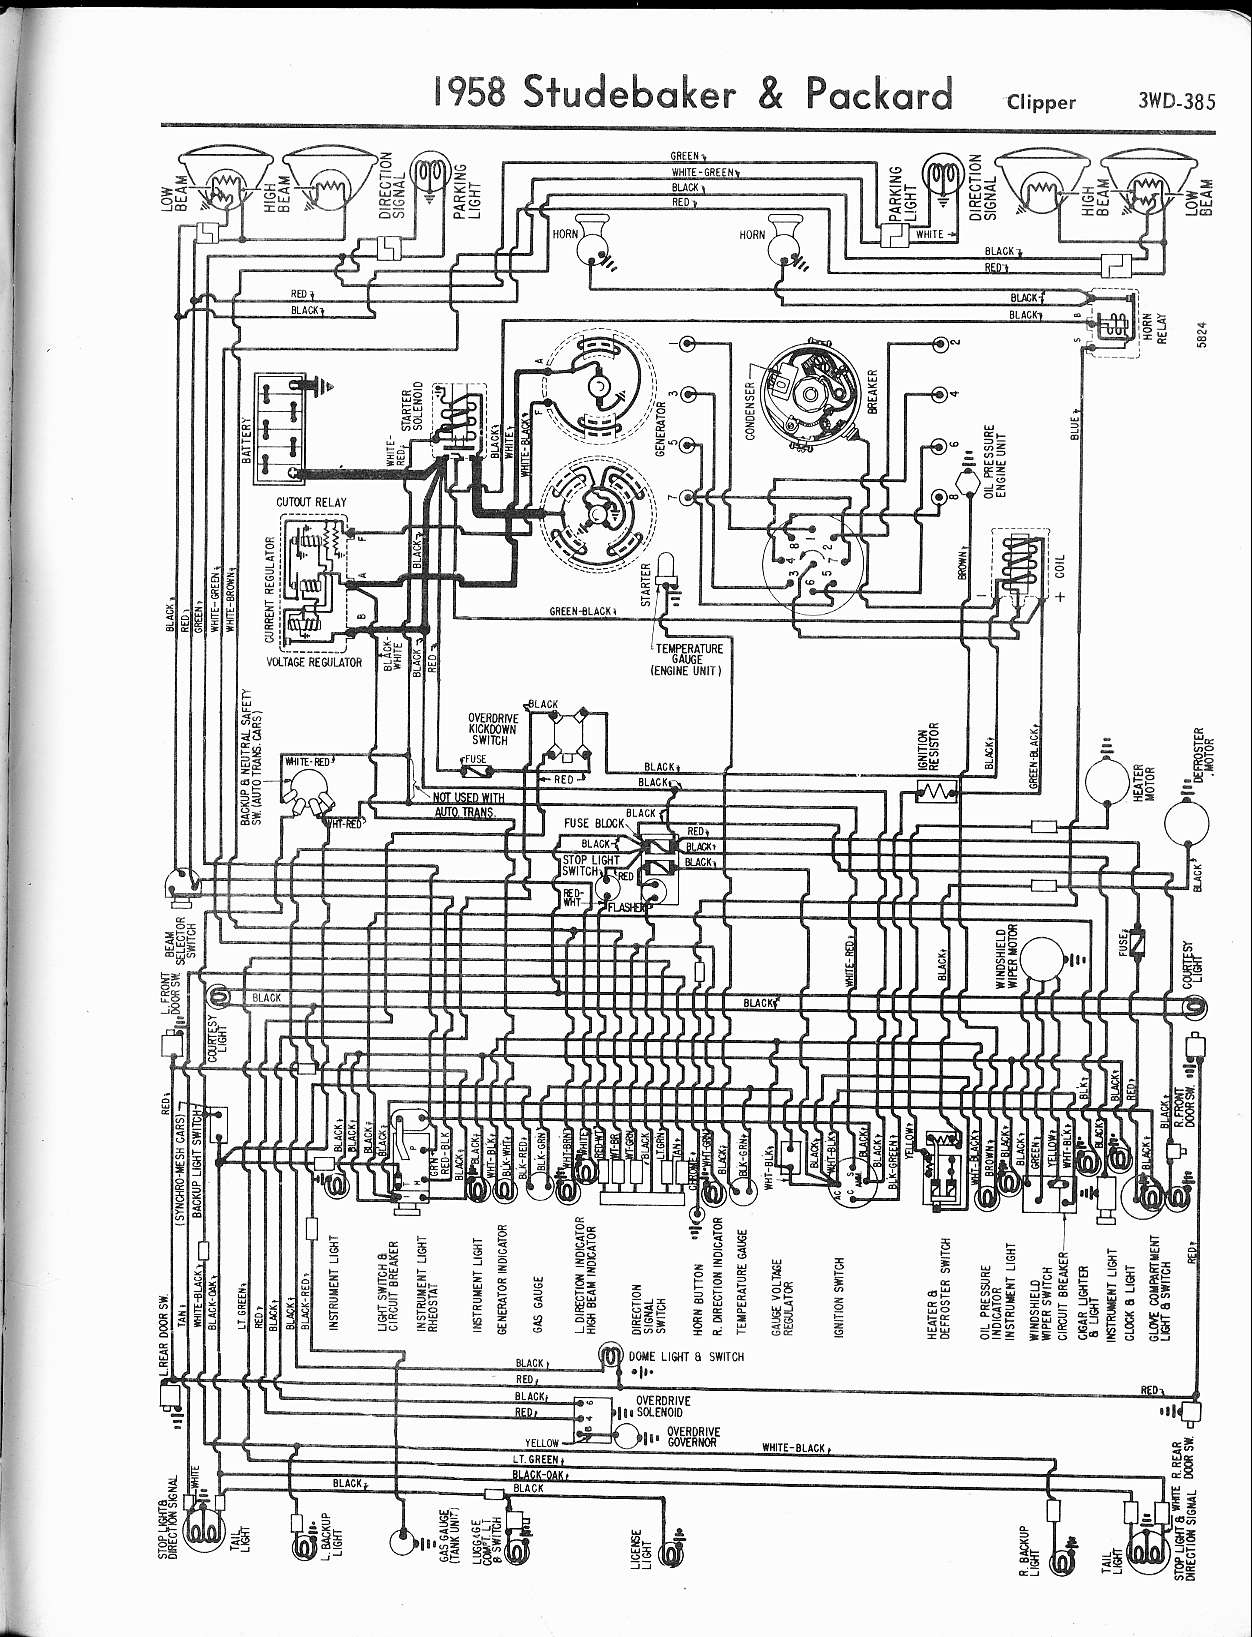 MWire5765 385 packard wiring diagram packard c140a wiring diagram \u2022 wiring 1954 Packard Clipper Deluxe at crackthecode.co